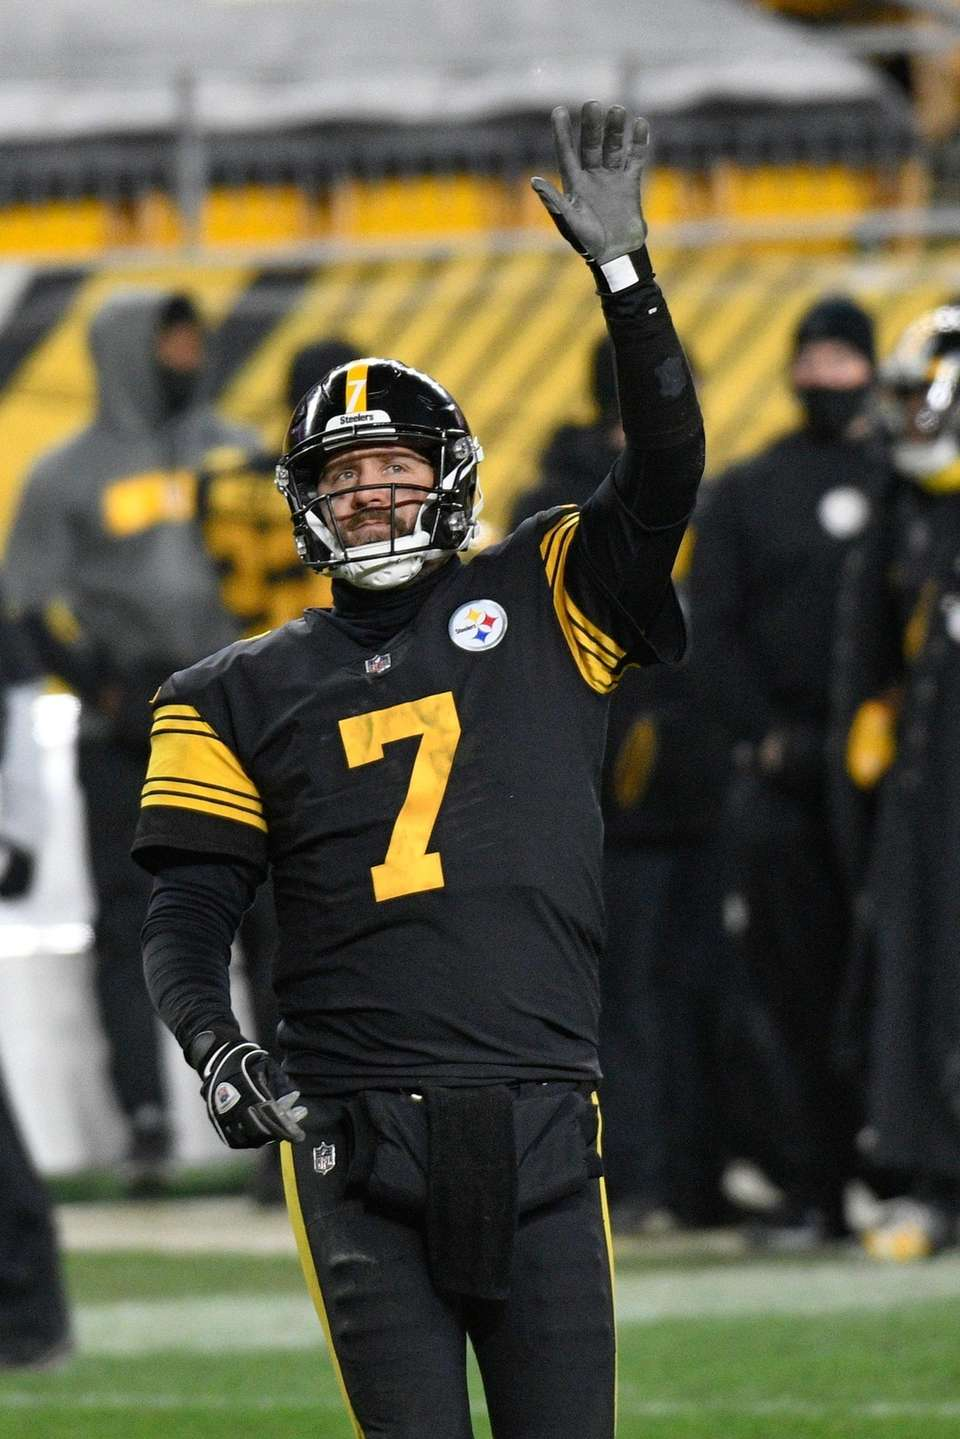 Pittsburgh Steelers quarterback Ben Roethlisberger celebrates after throwing